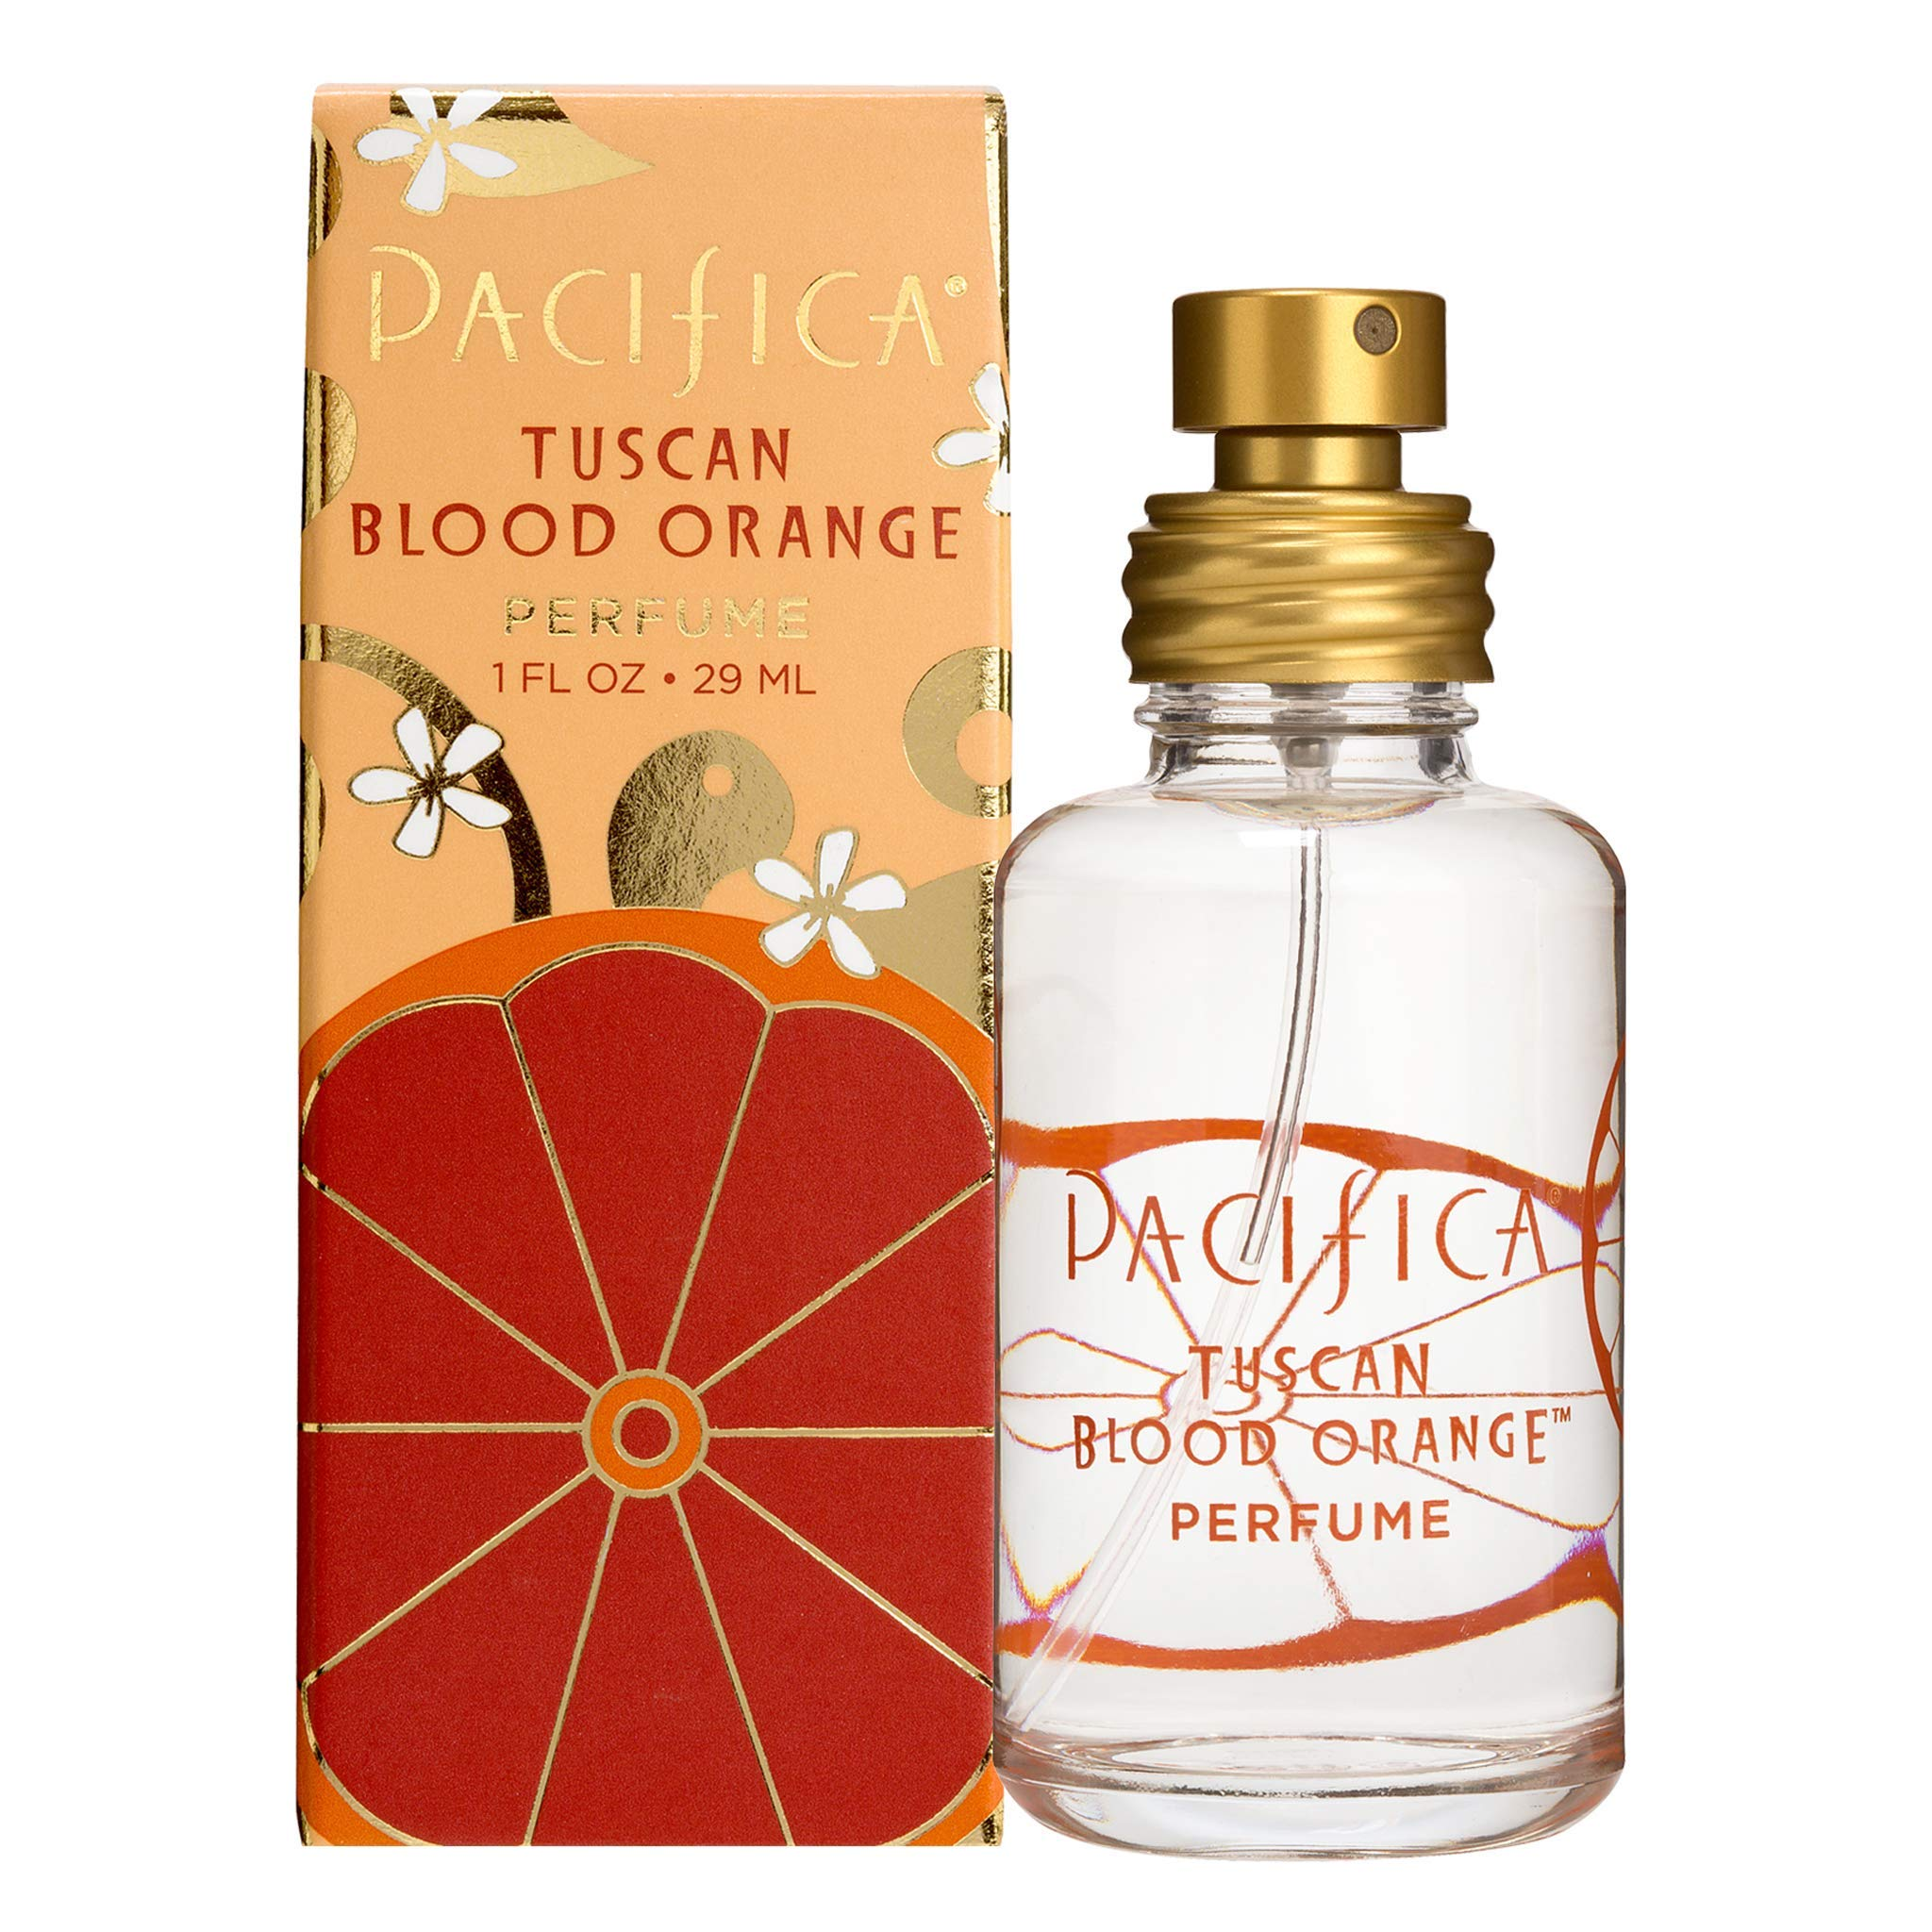 Pacifica Beauty Tuscan Blood Orange Spray Perfume, Made with Natural & Essential Oils, 1 Fl Oz